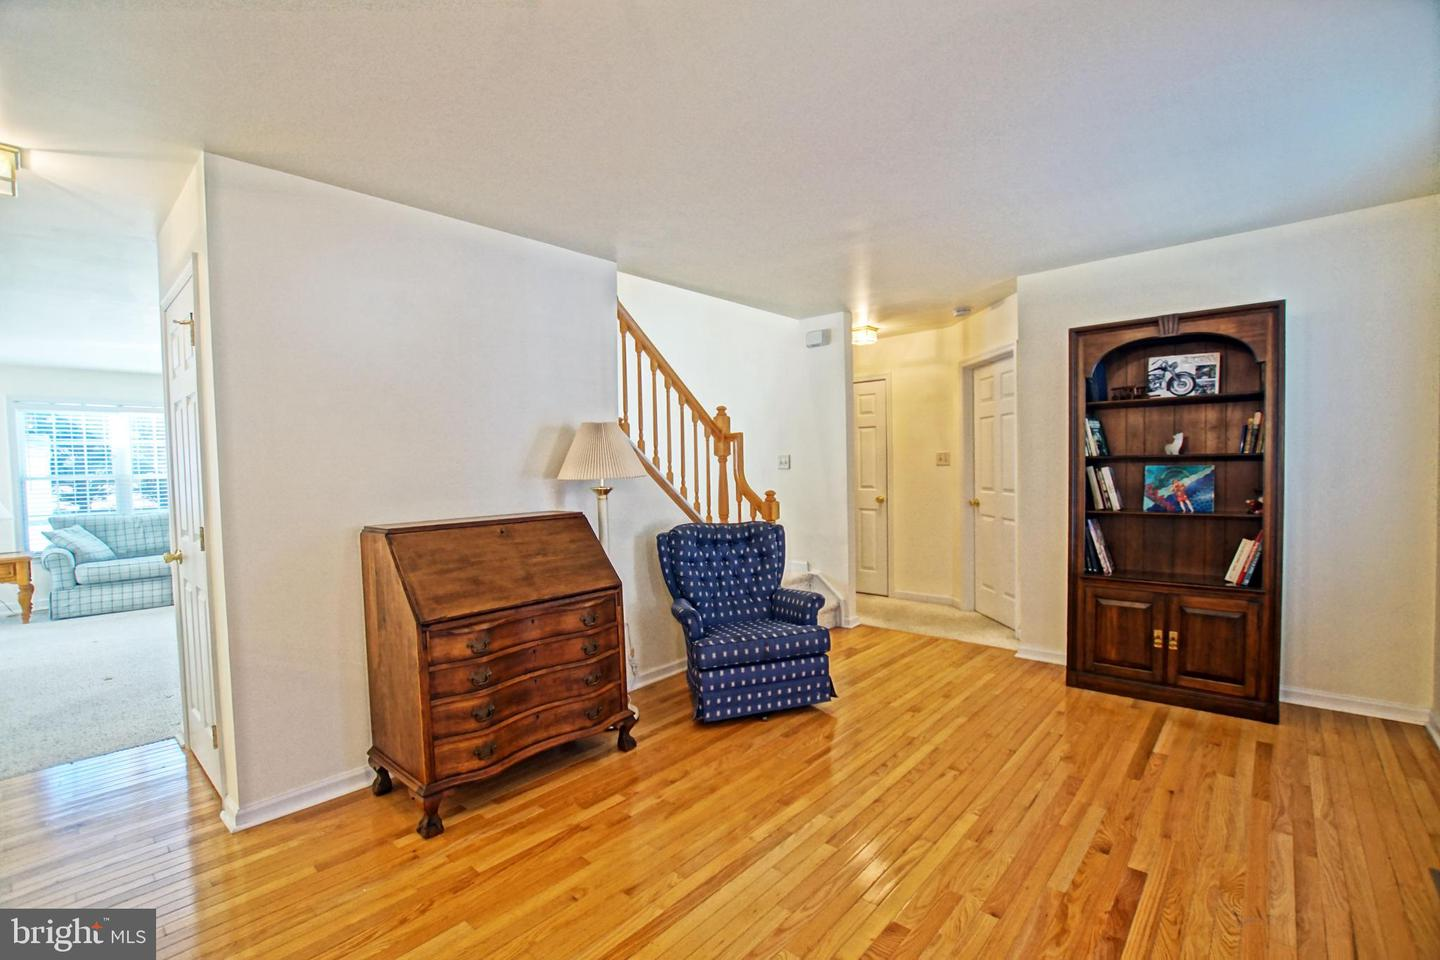 DESU131060-301385261369-2019-03-05-16-24-09 23 Autumnwood Way | Lewes, DE Real Estate For Sale | MLS# Desu131060  - Lee Ann Group